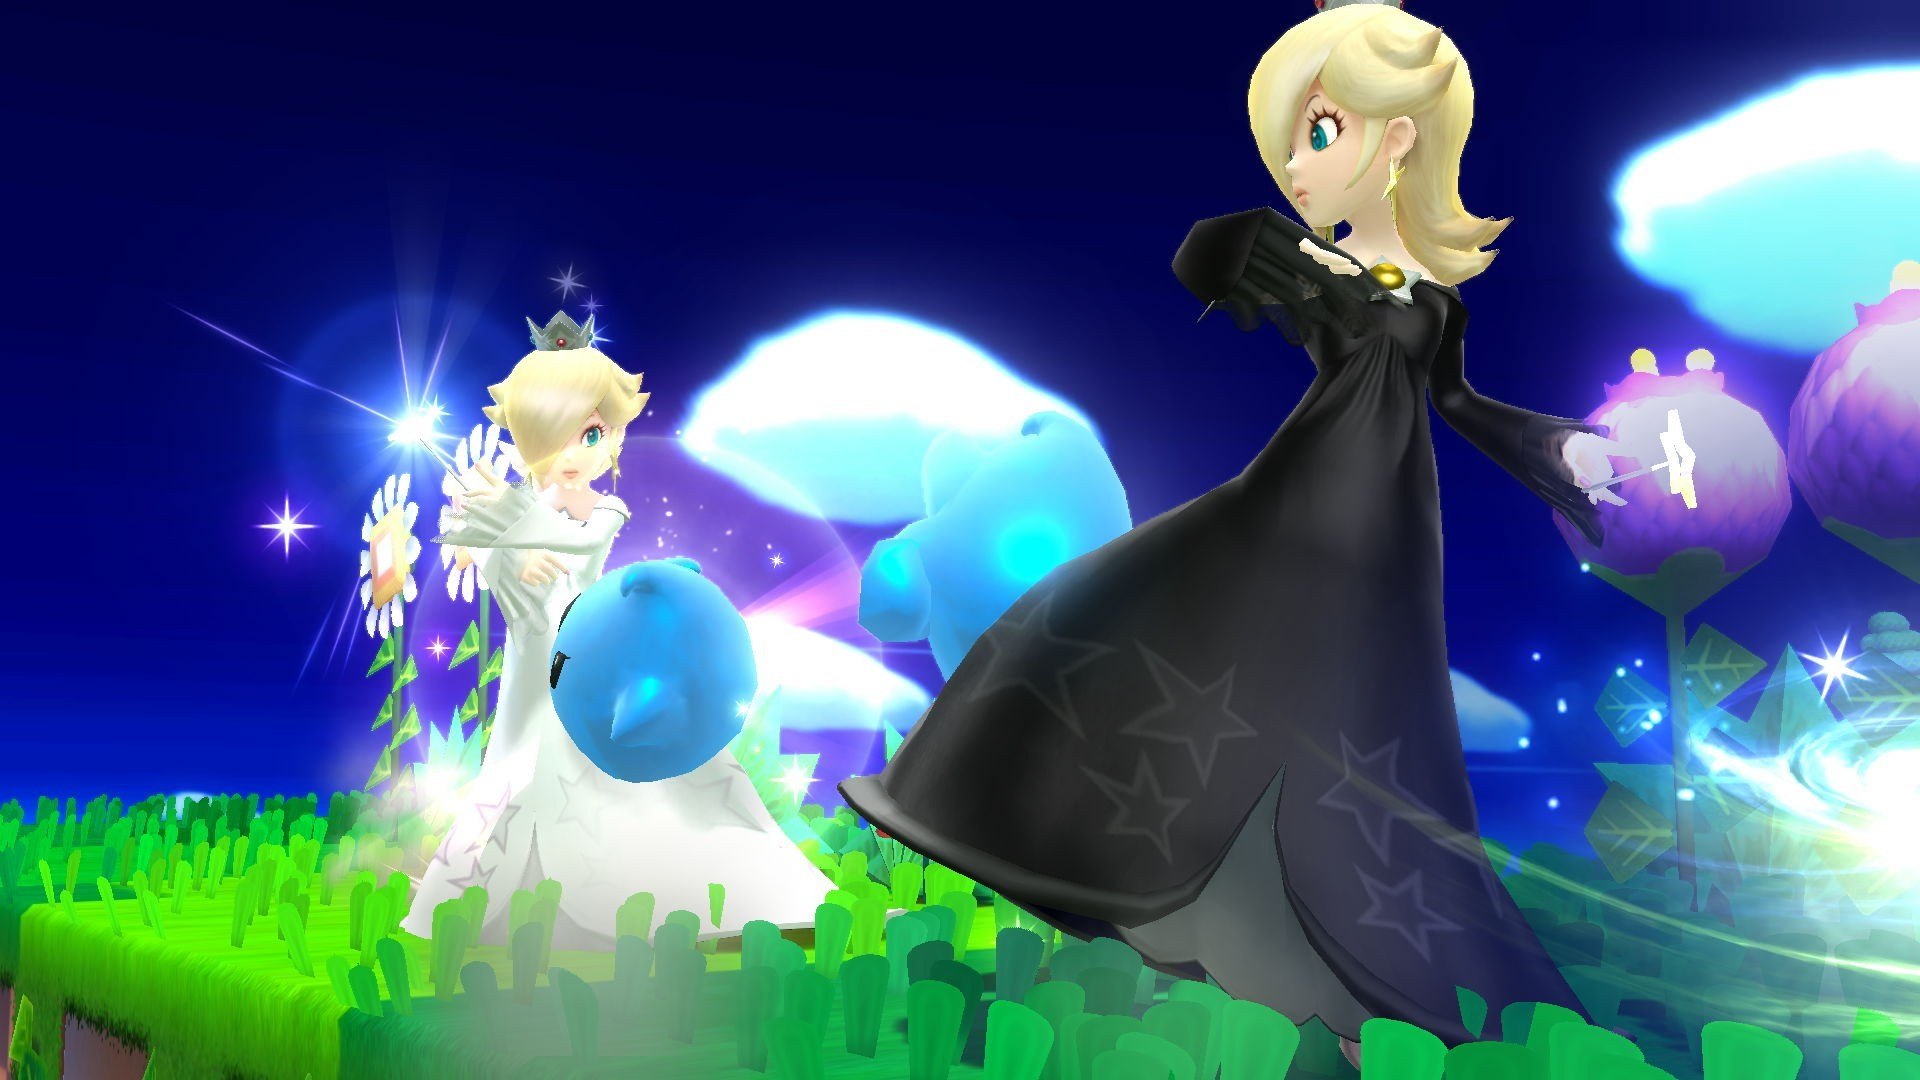 1920x1080 Monochrome Rosalina A Rosalina and Luma Super Smash Bros. for Wii U (SSBU)  Skin Mod submitted by amphetavin